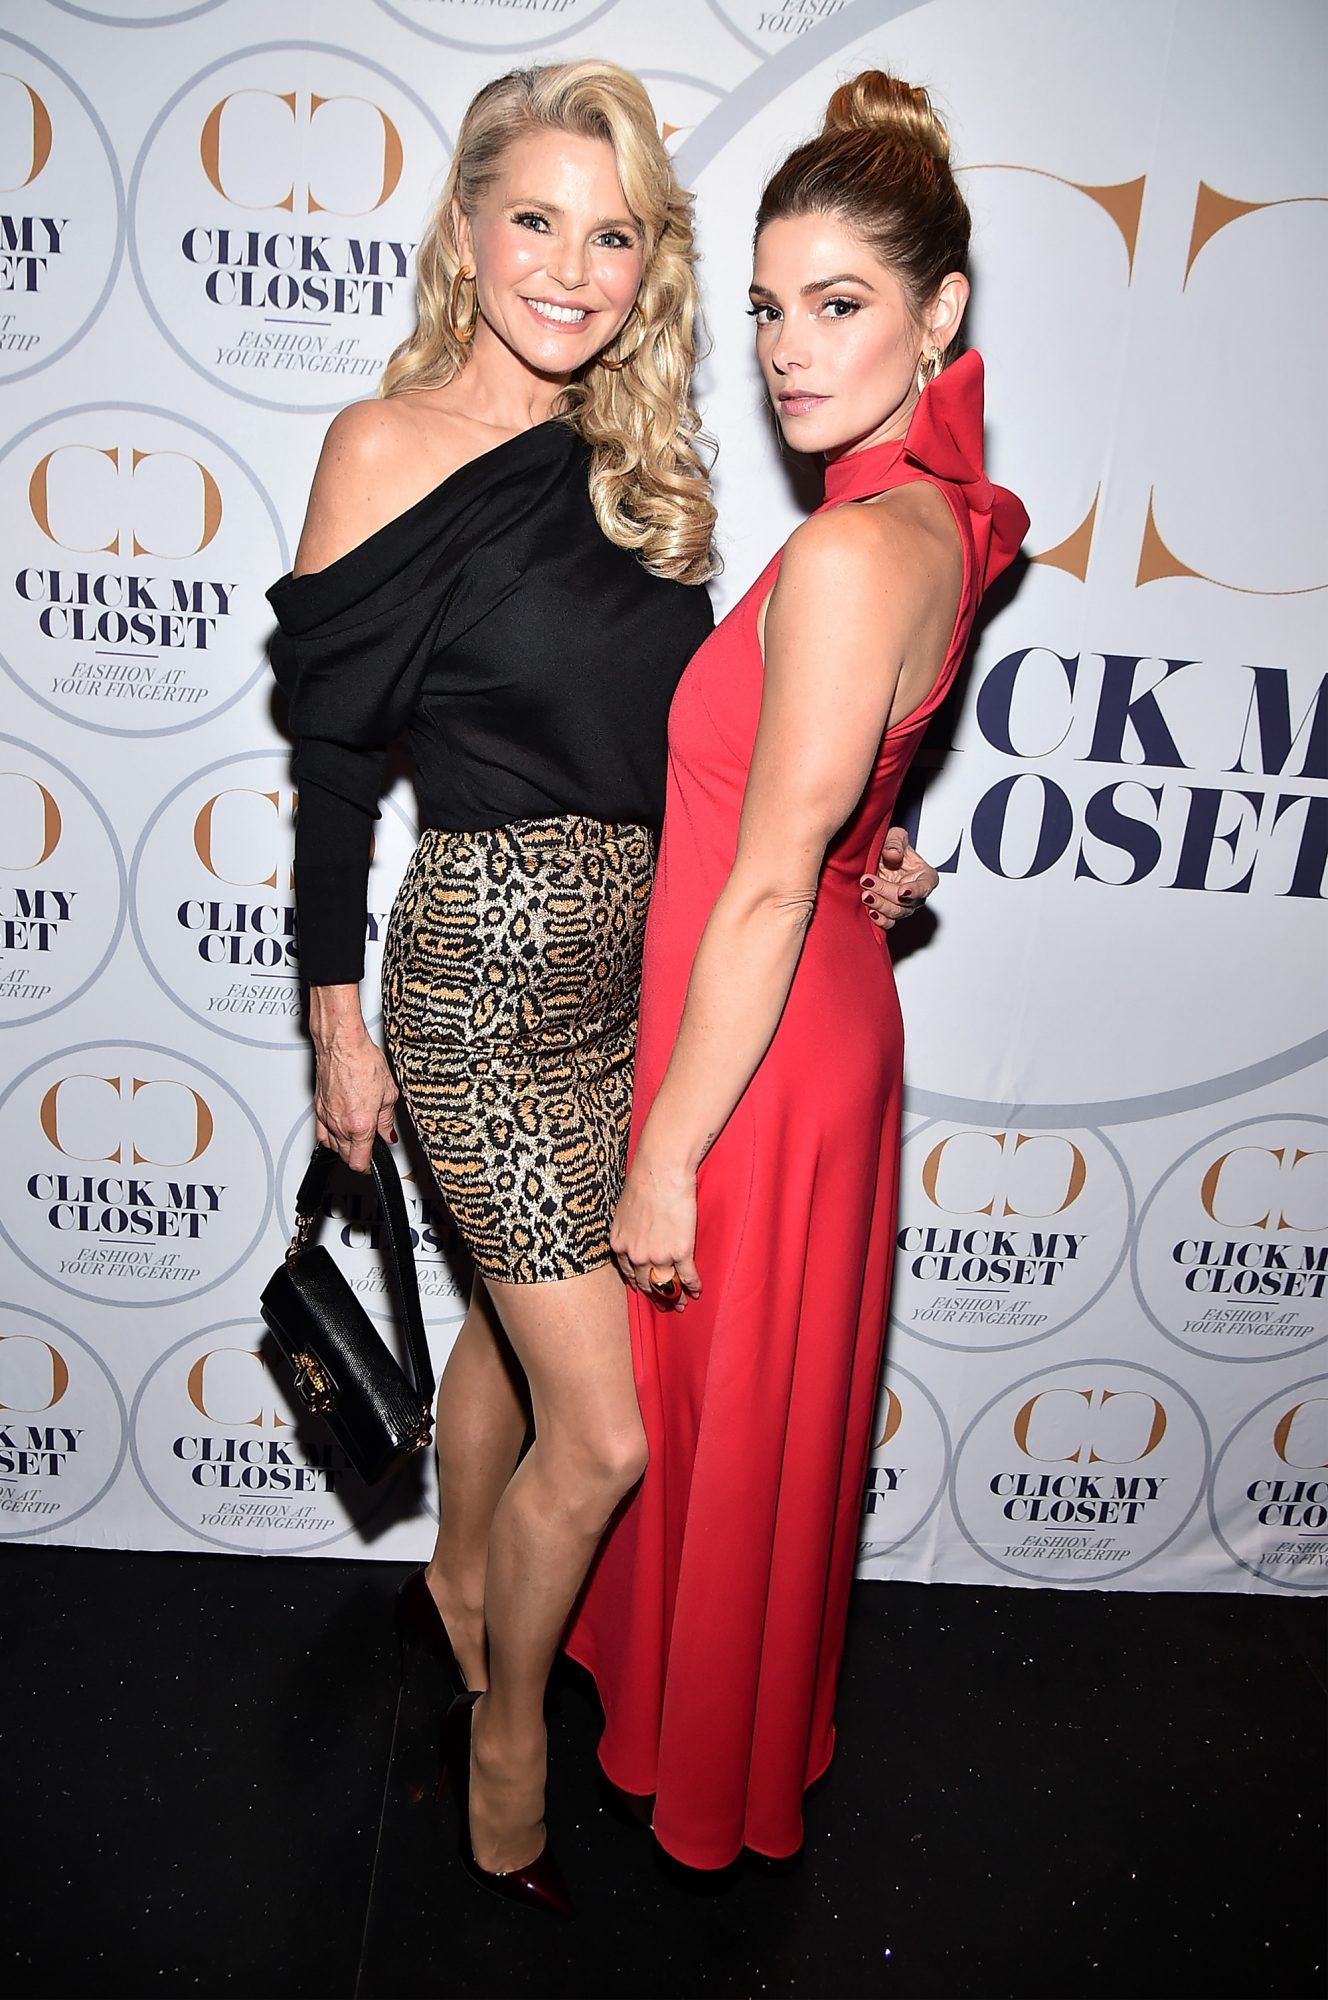 Christie Brinkley and Ashley Greene